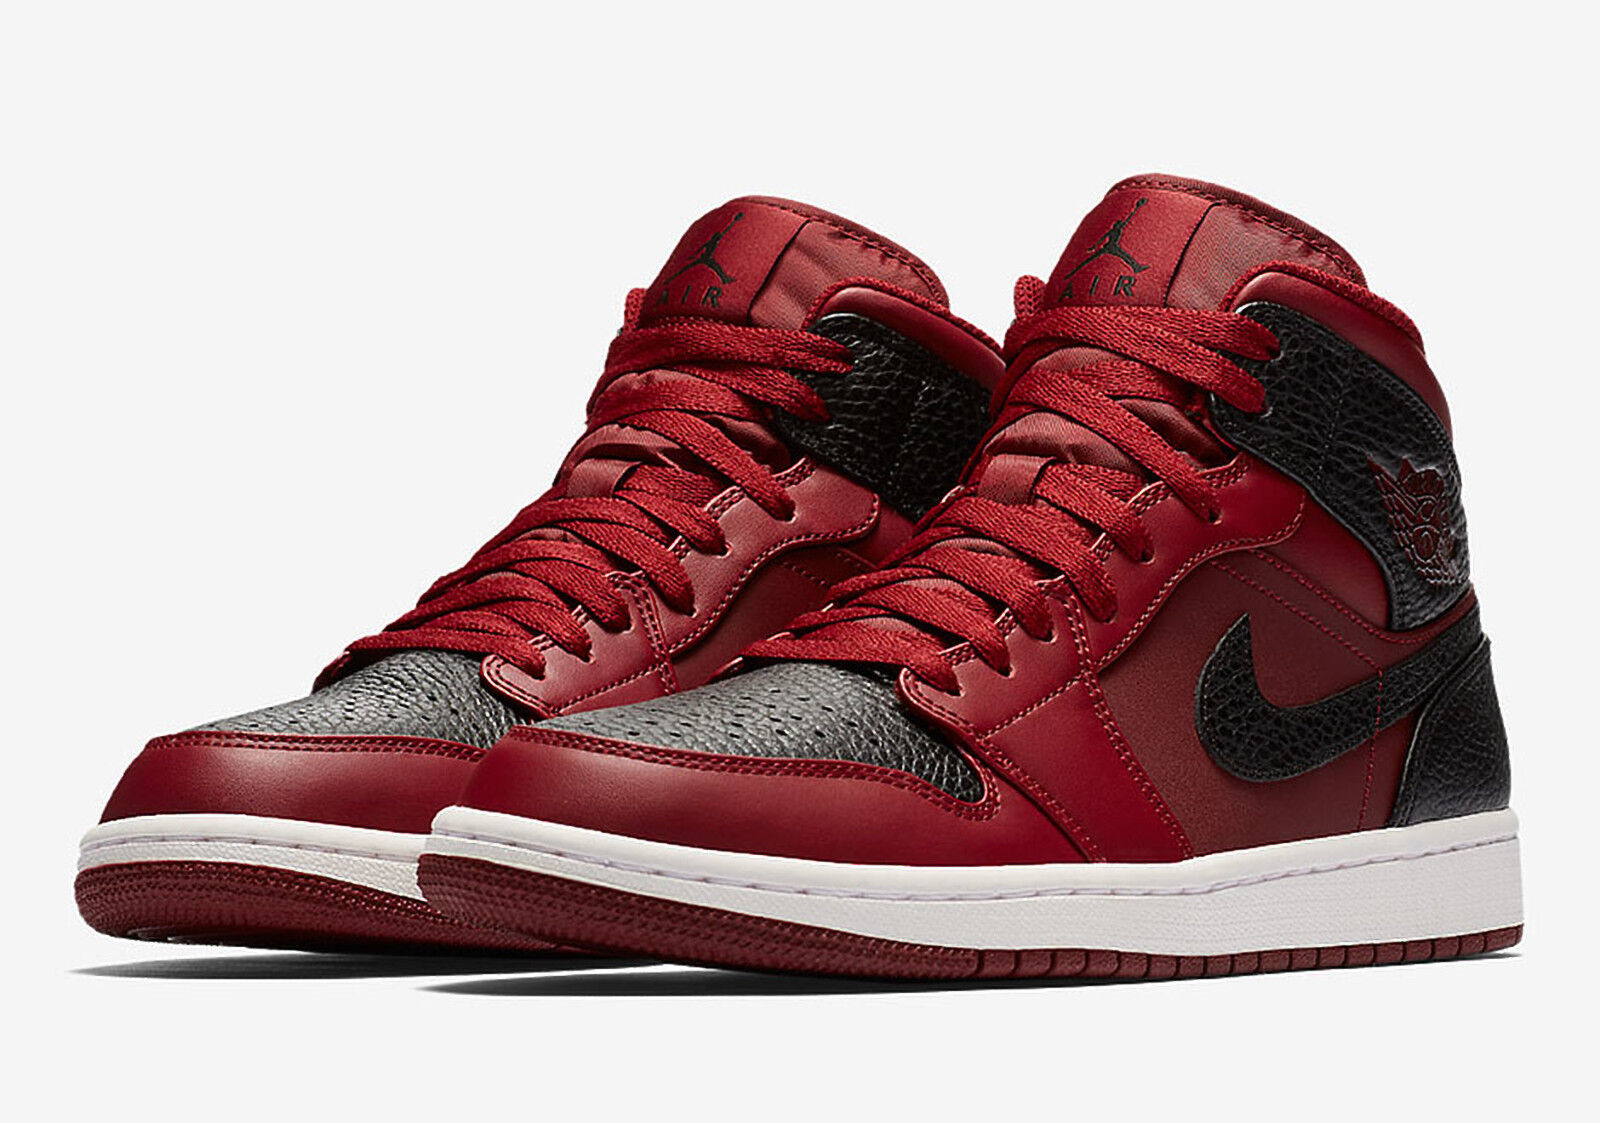 d2f01f4d3904 ... high nouv black gym red white basketball d2798 b1b56  usa nike air  jordan 1 mid team rouge noir box trainers9 new in box rouge noir